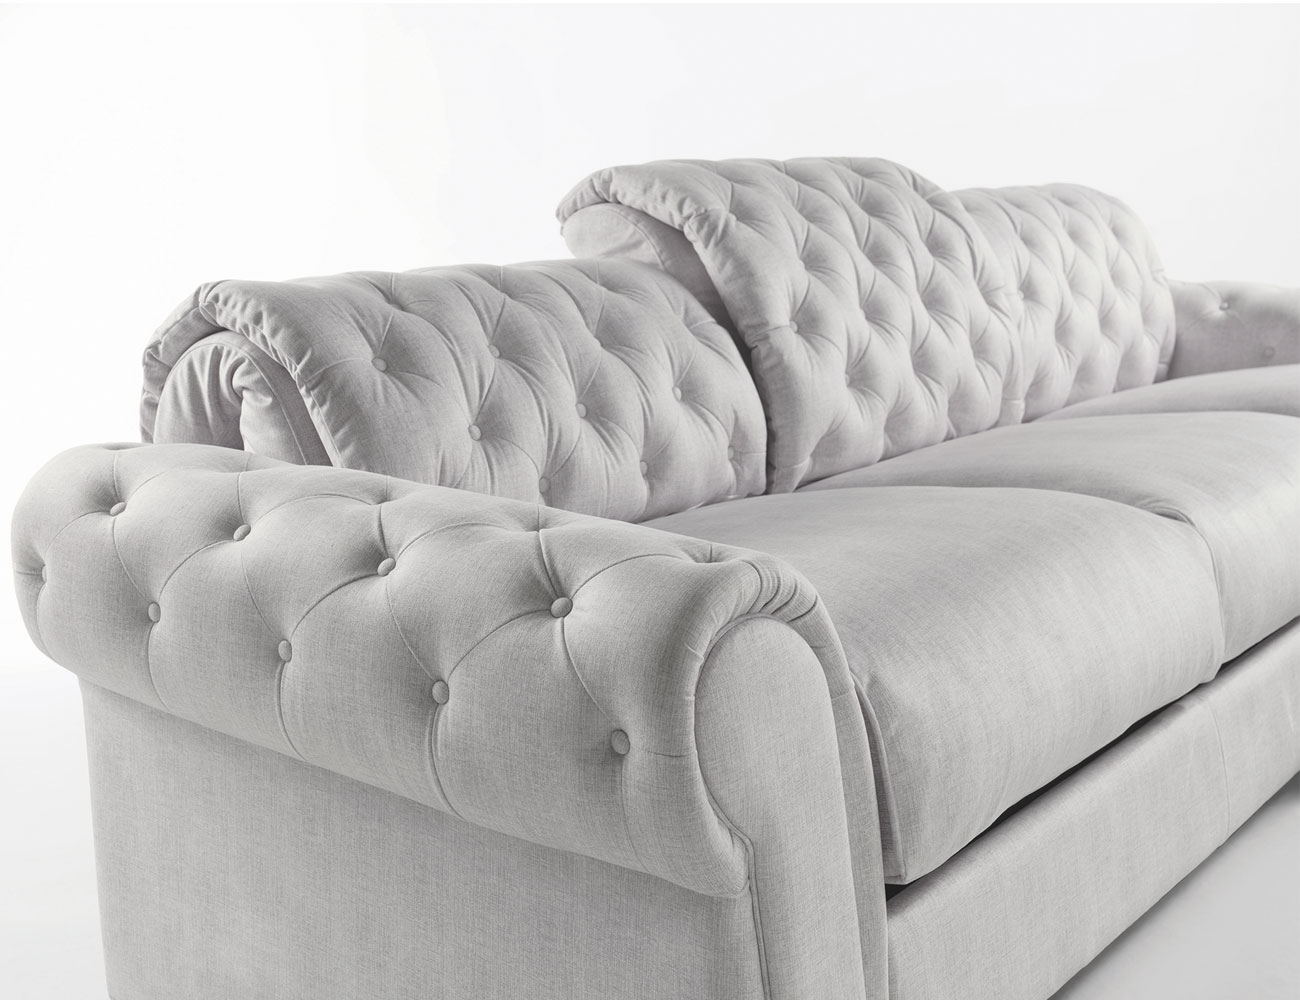 Sofa chaiselongue gran lujo decorativo capitone blanco tela 138